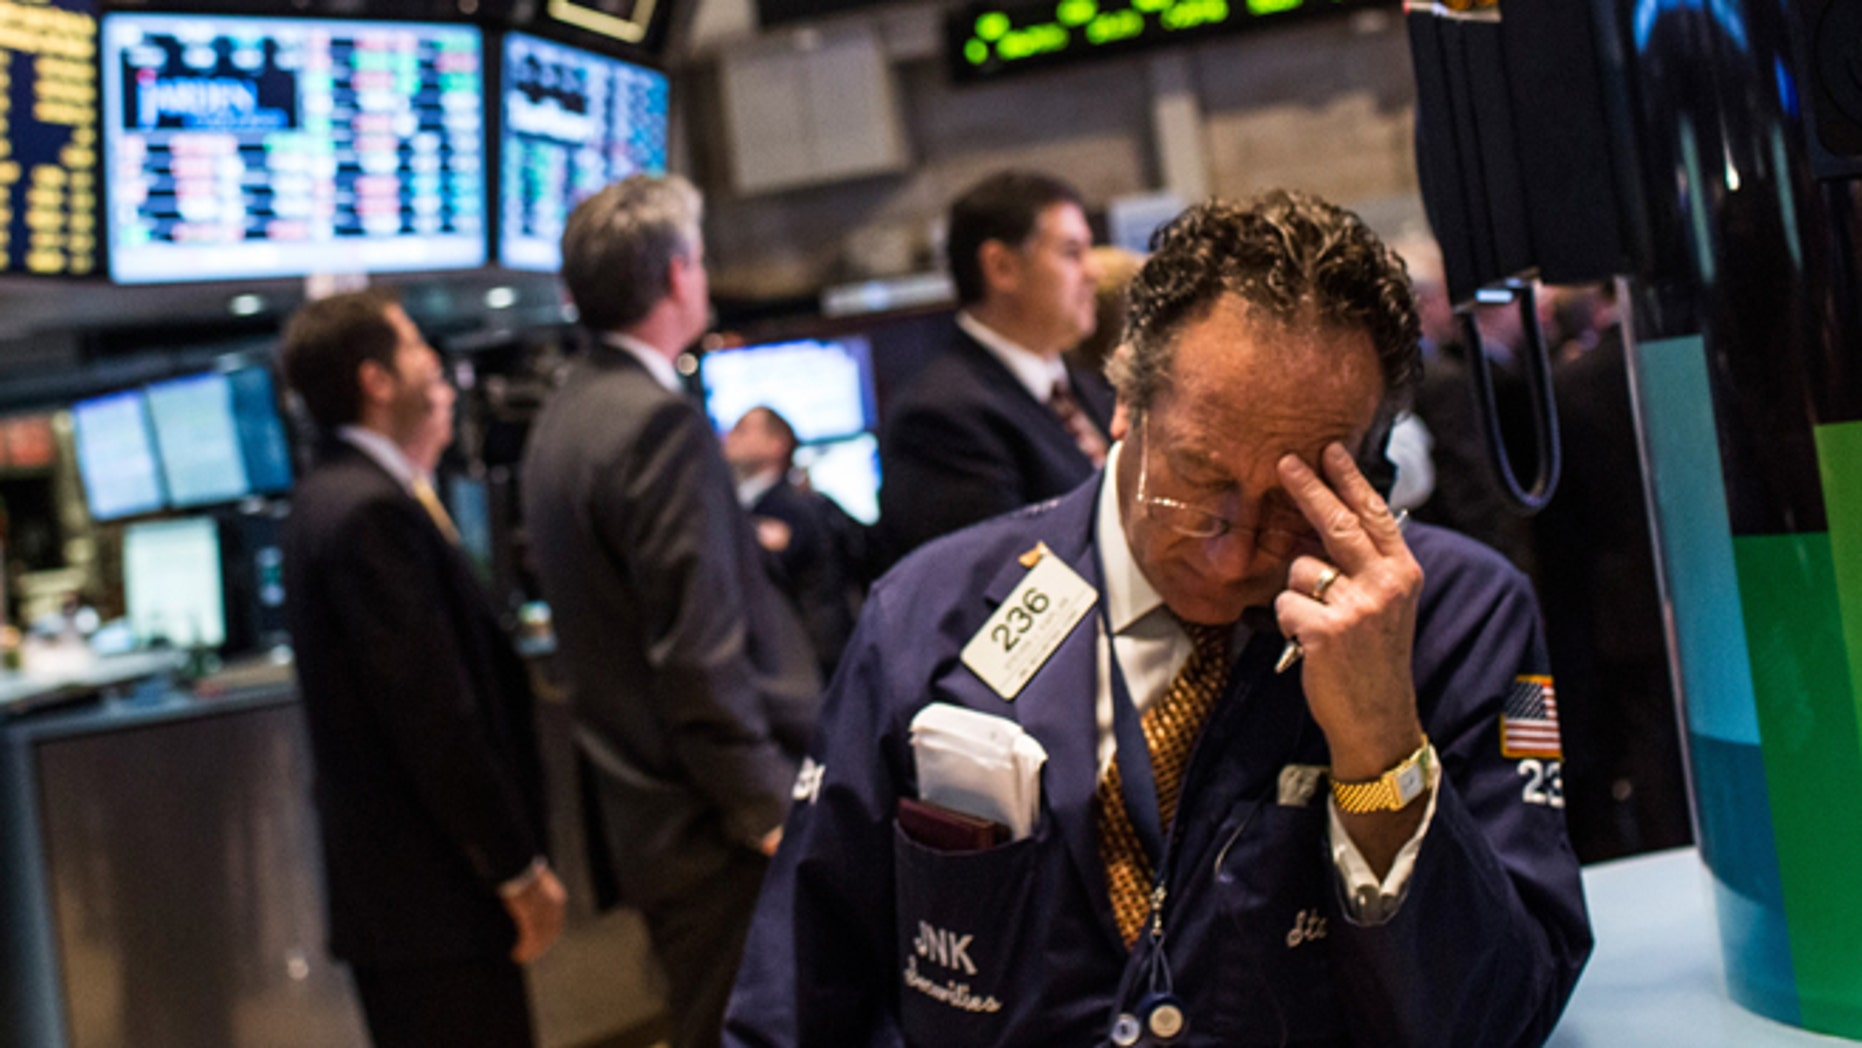 NEW YORK, NY - DECEMBER 04:  A trader works on the floor of the New York Stock Exchange on December 4, 2013 in New York City. The Dow Jones Industrial Average dipped over 100 points during trading before bouncing back to approximately 15,900; the market peaked at a record high last month at over 16,000 points.  (Photo by Andrew Burton/Getty Images)